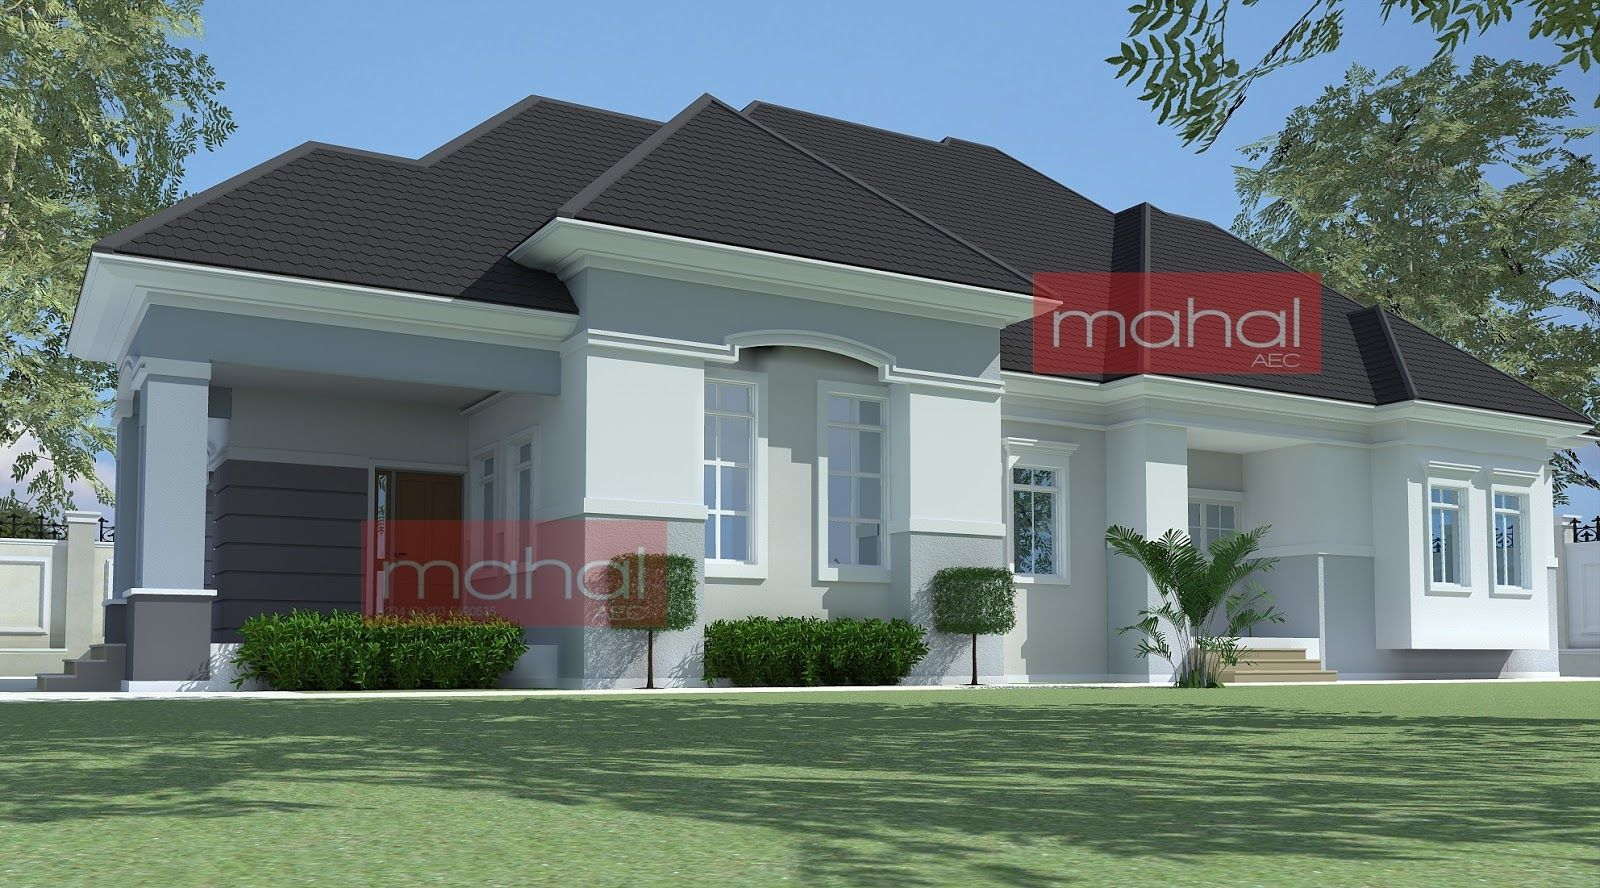 4 bedroom bungalow plan in nigeria 4 bedroom bungalow three floor house designs exterior house design two floor